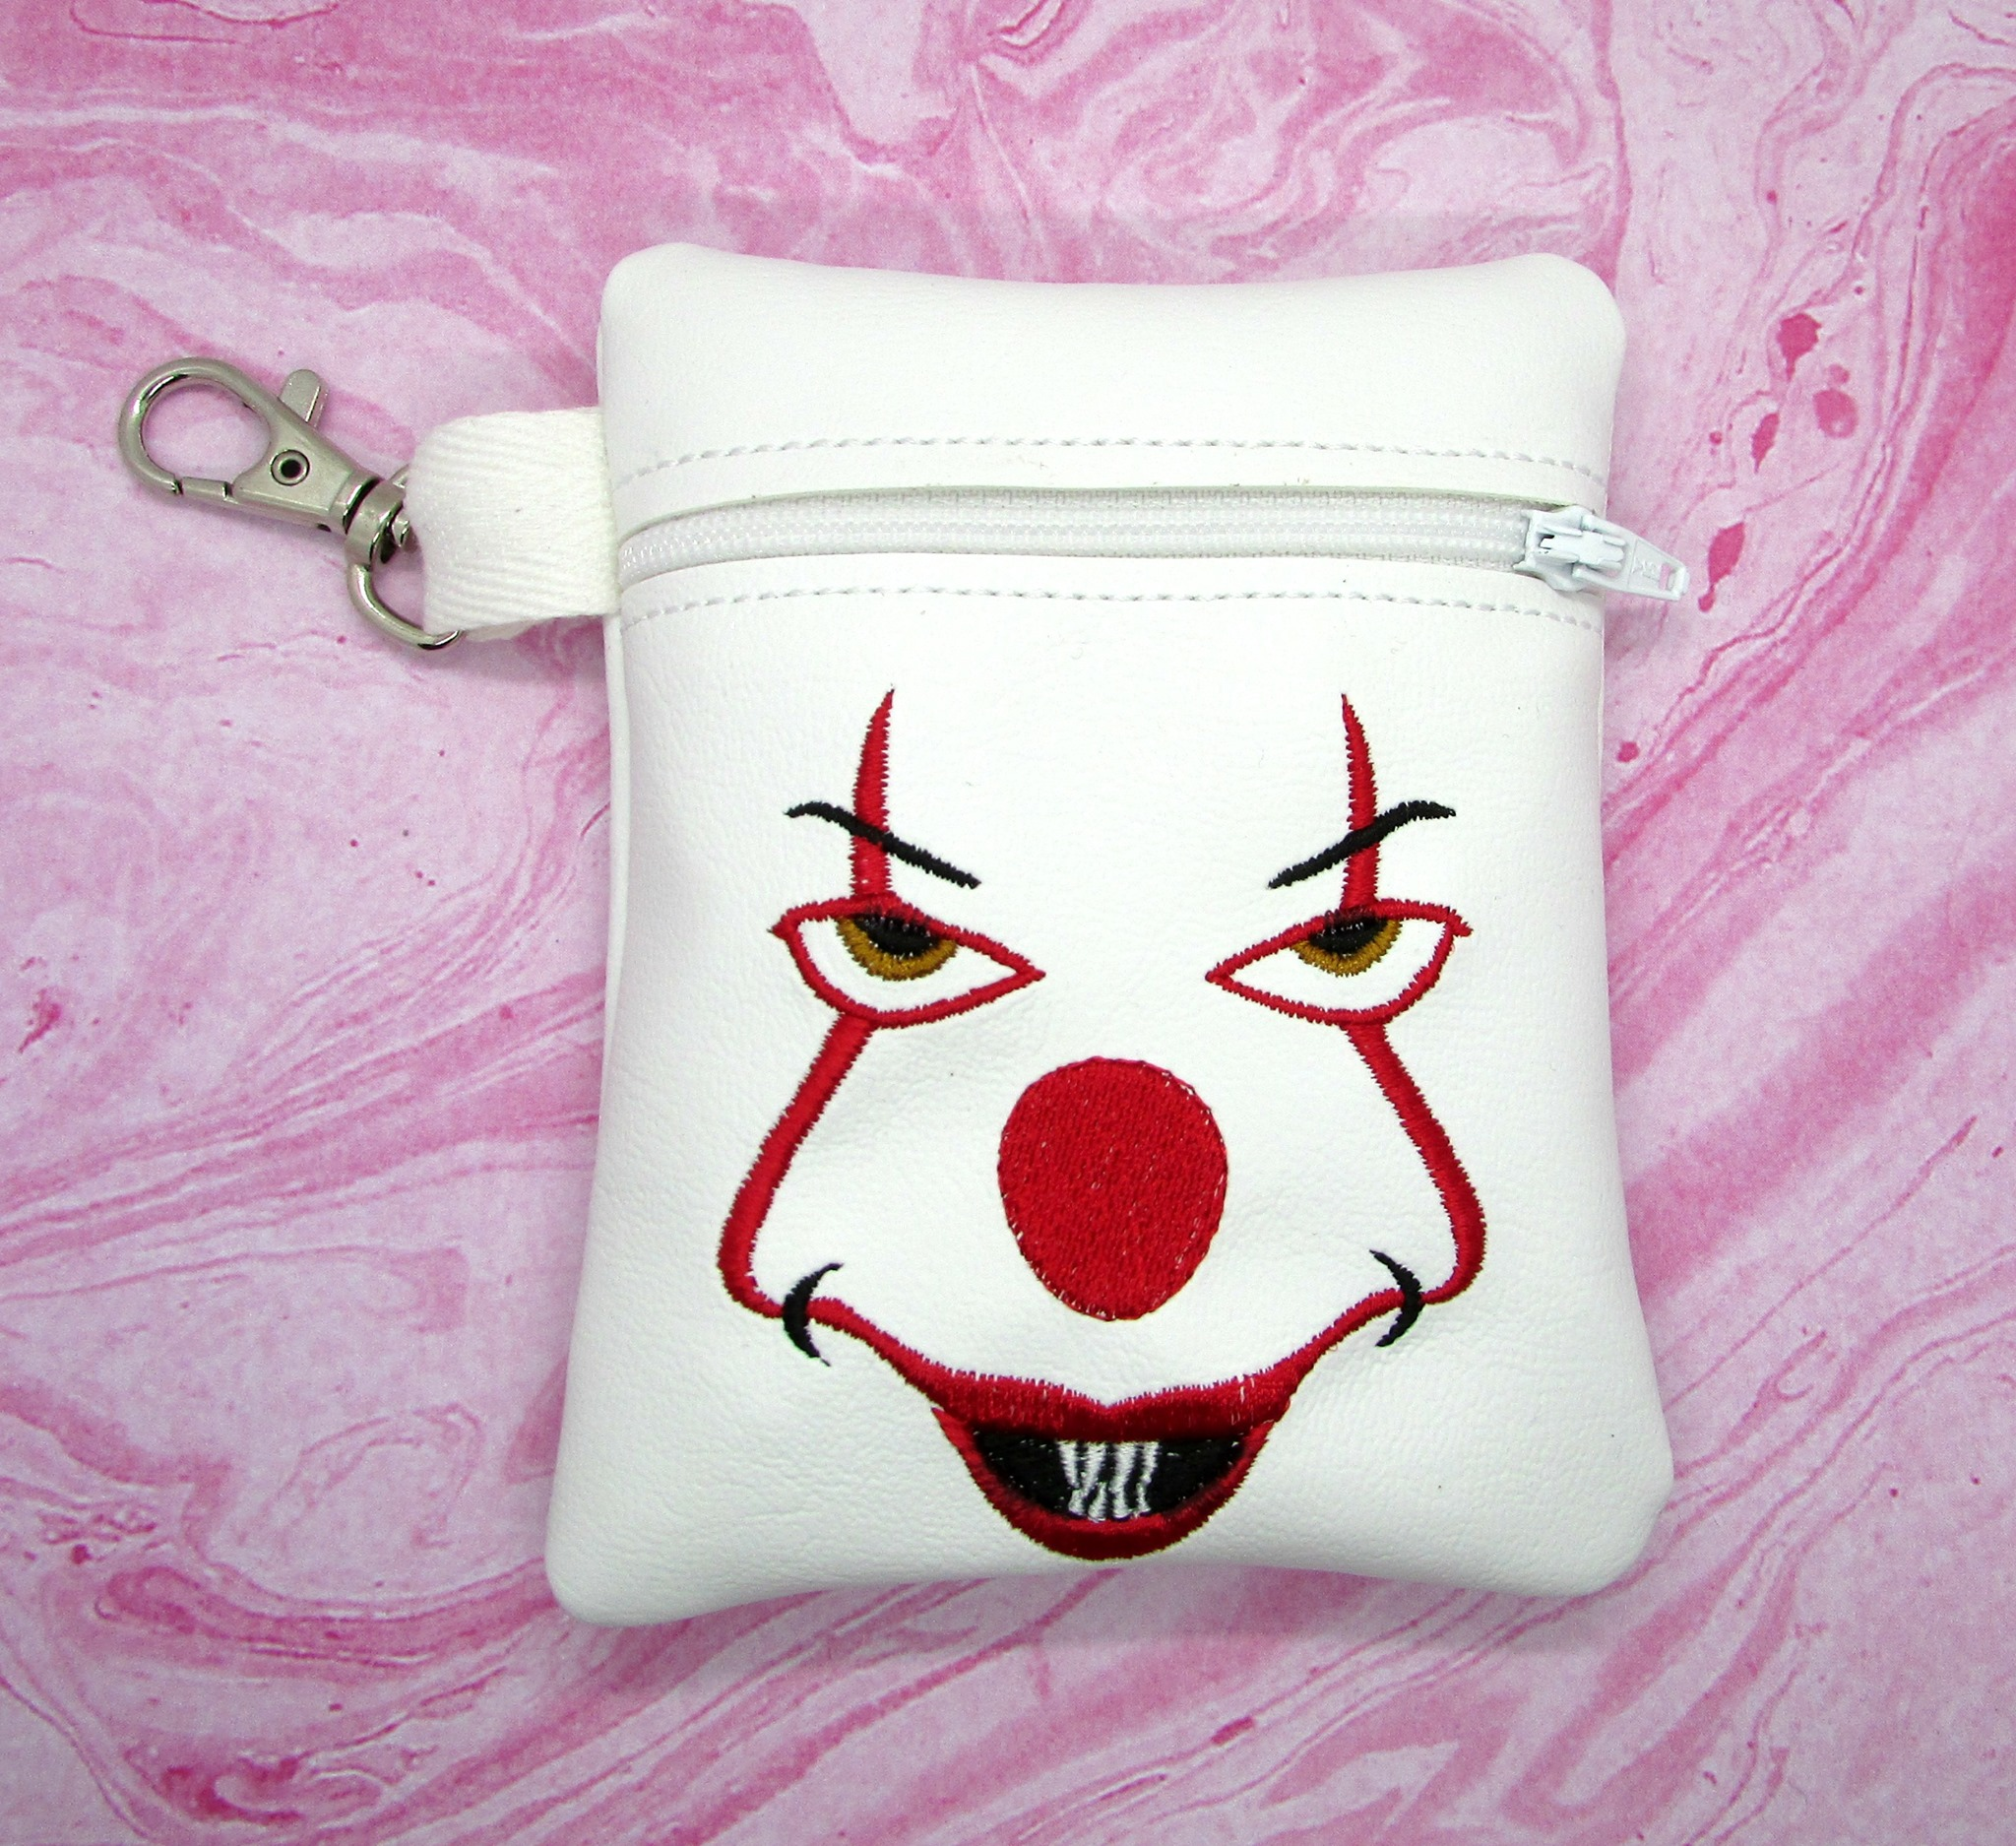 PennyWise Face Zipper Bag Embroidery Design (5x7, unlined)